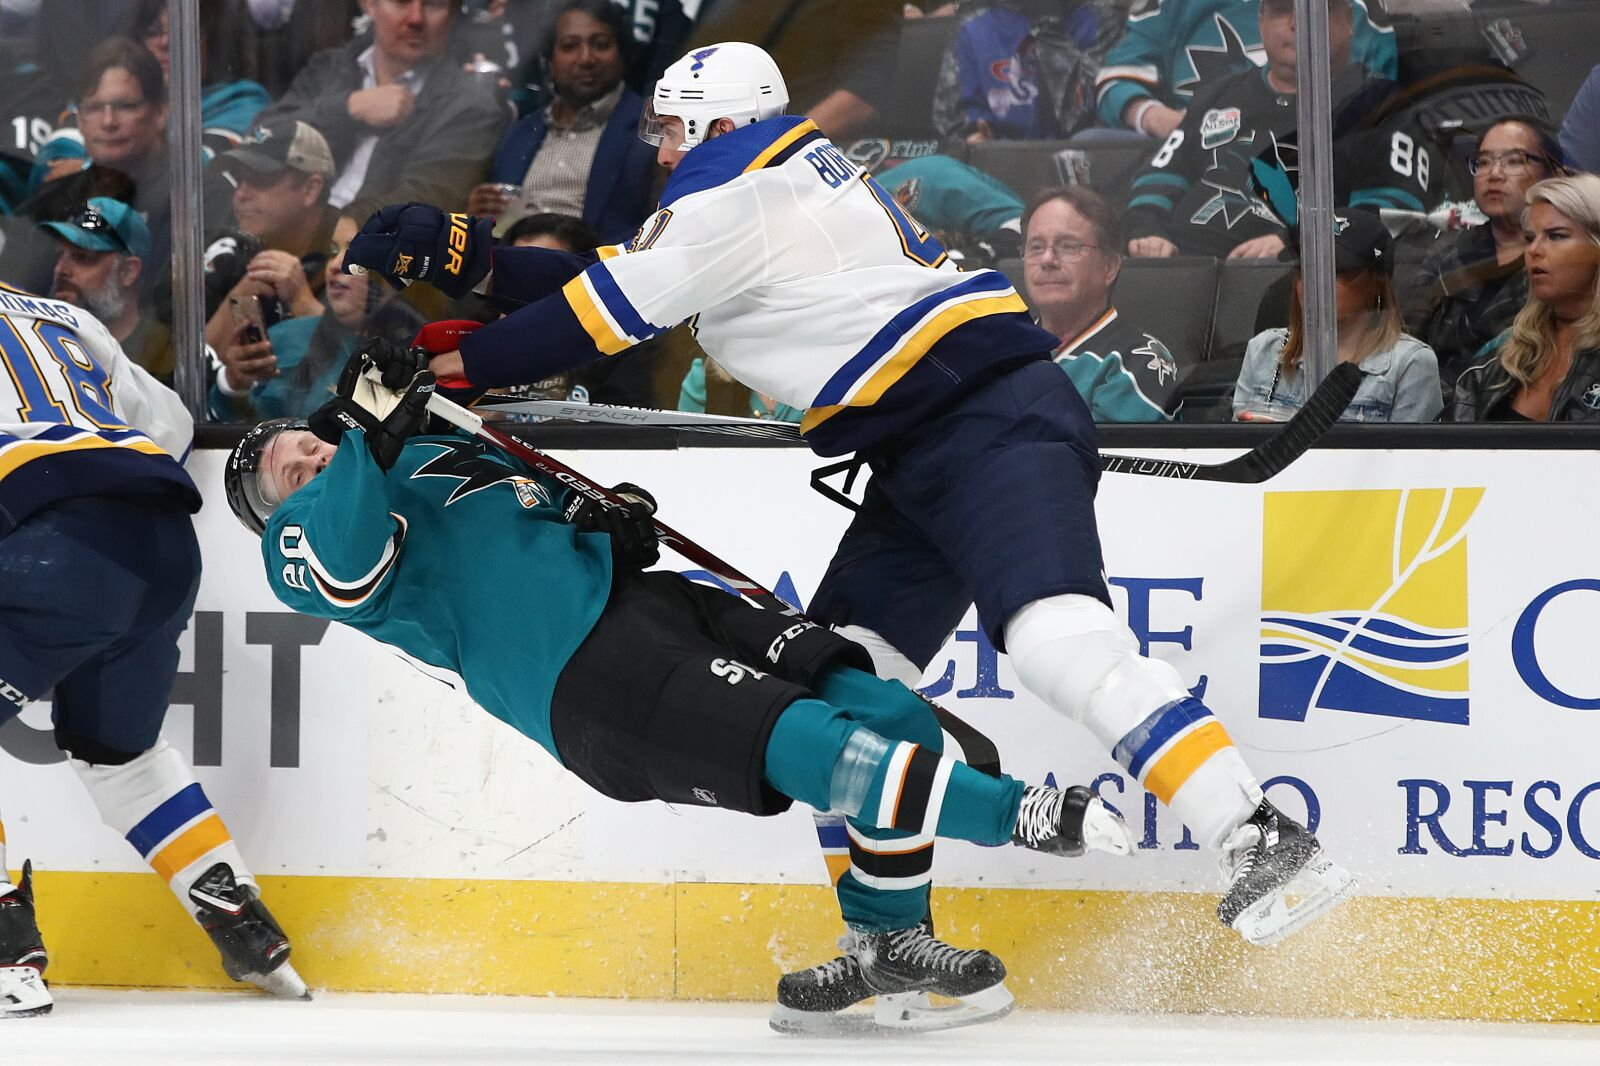 St. Louis Blues: Robert Bortuzzo Is More Than A Depth Piece